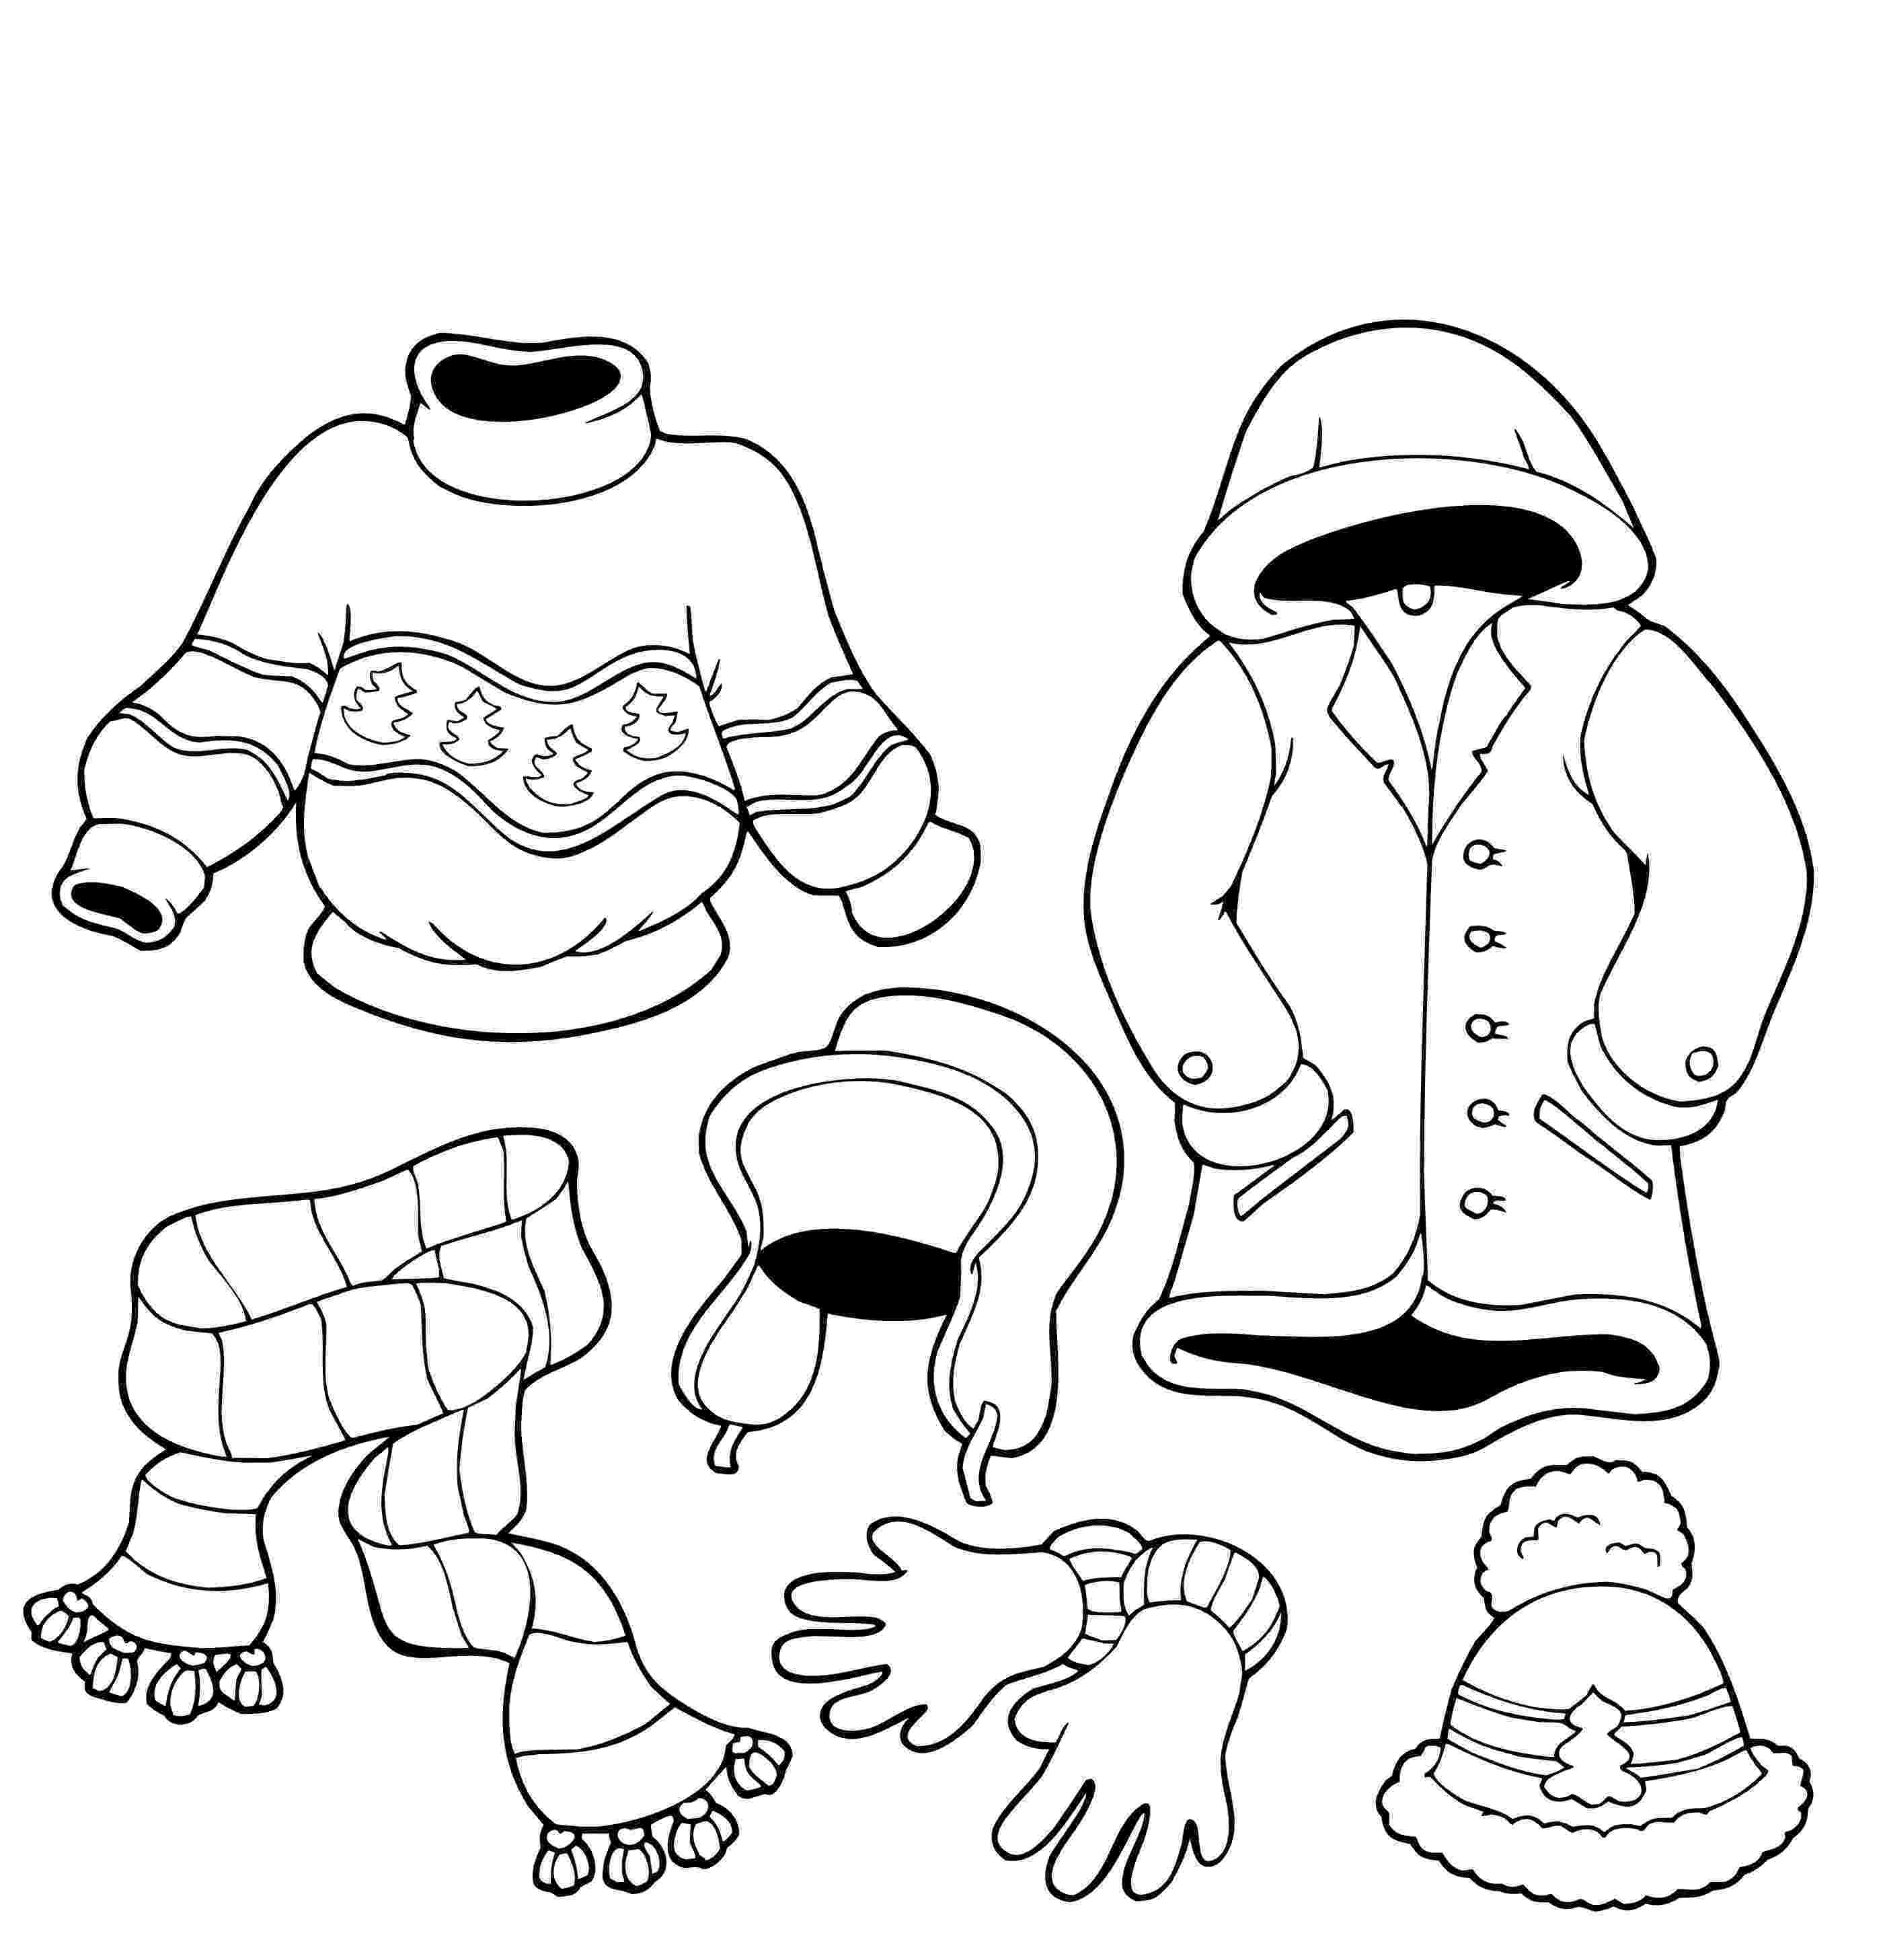 colouring sheets winter free printable winter coloring pages for kids colouring winter sheets